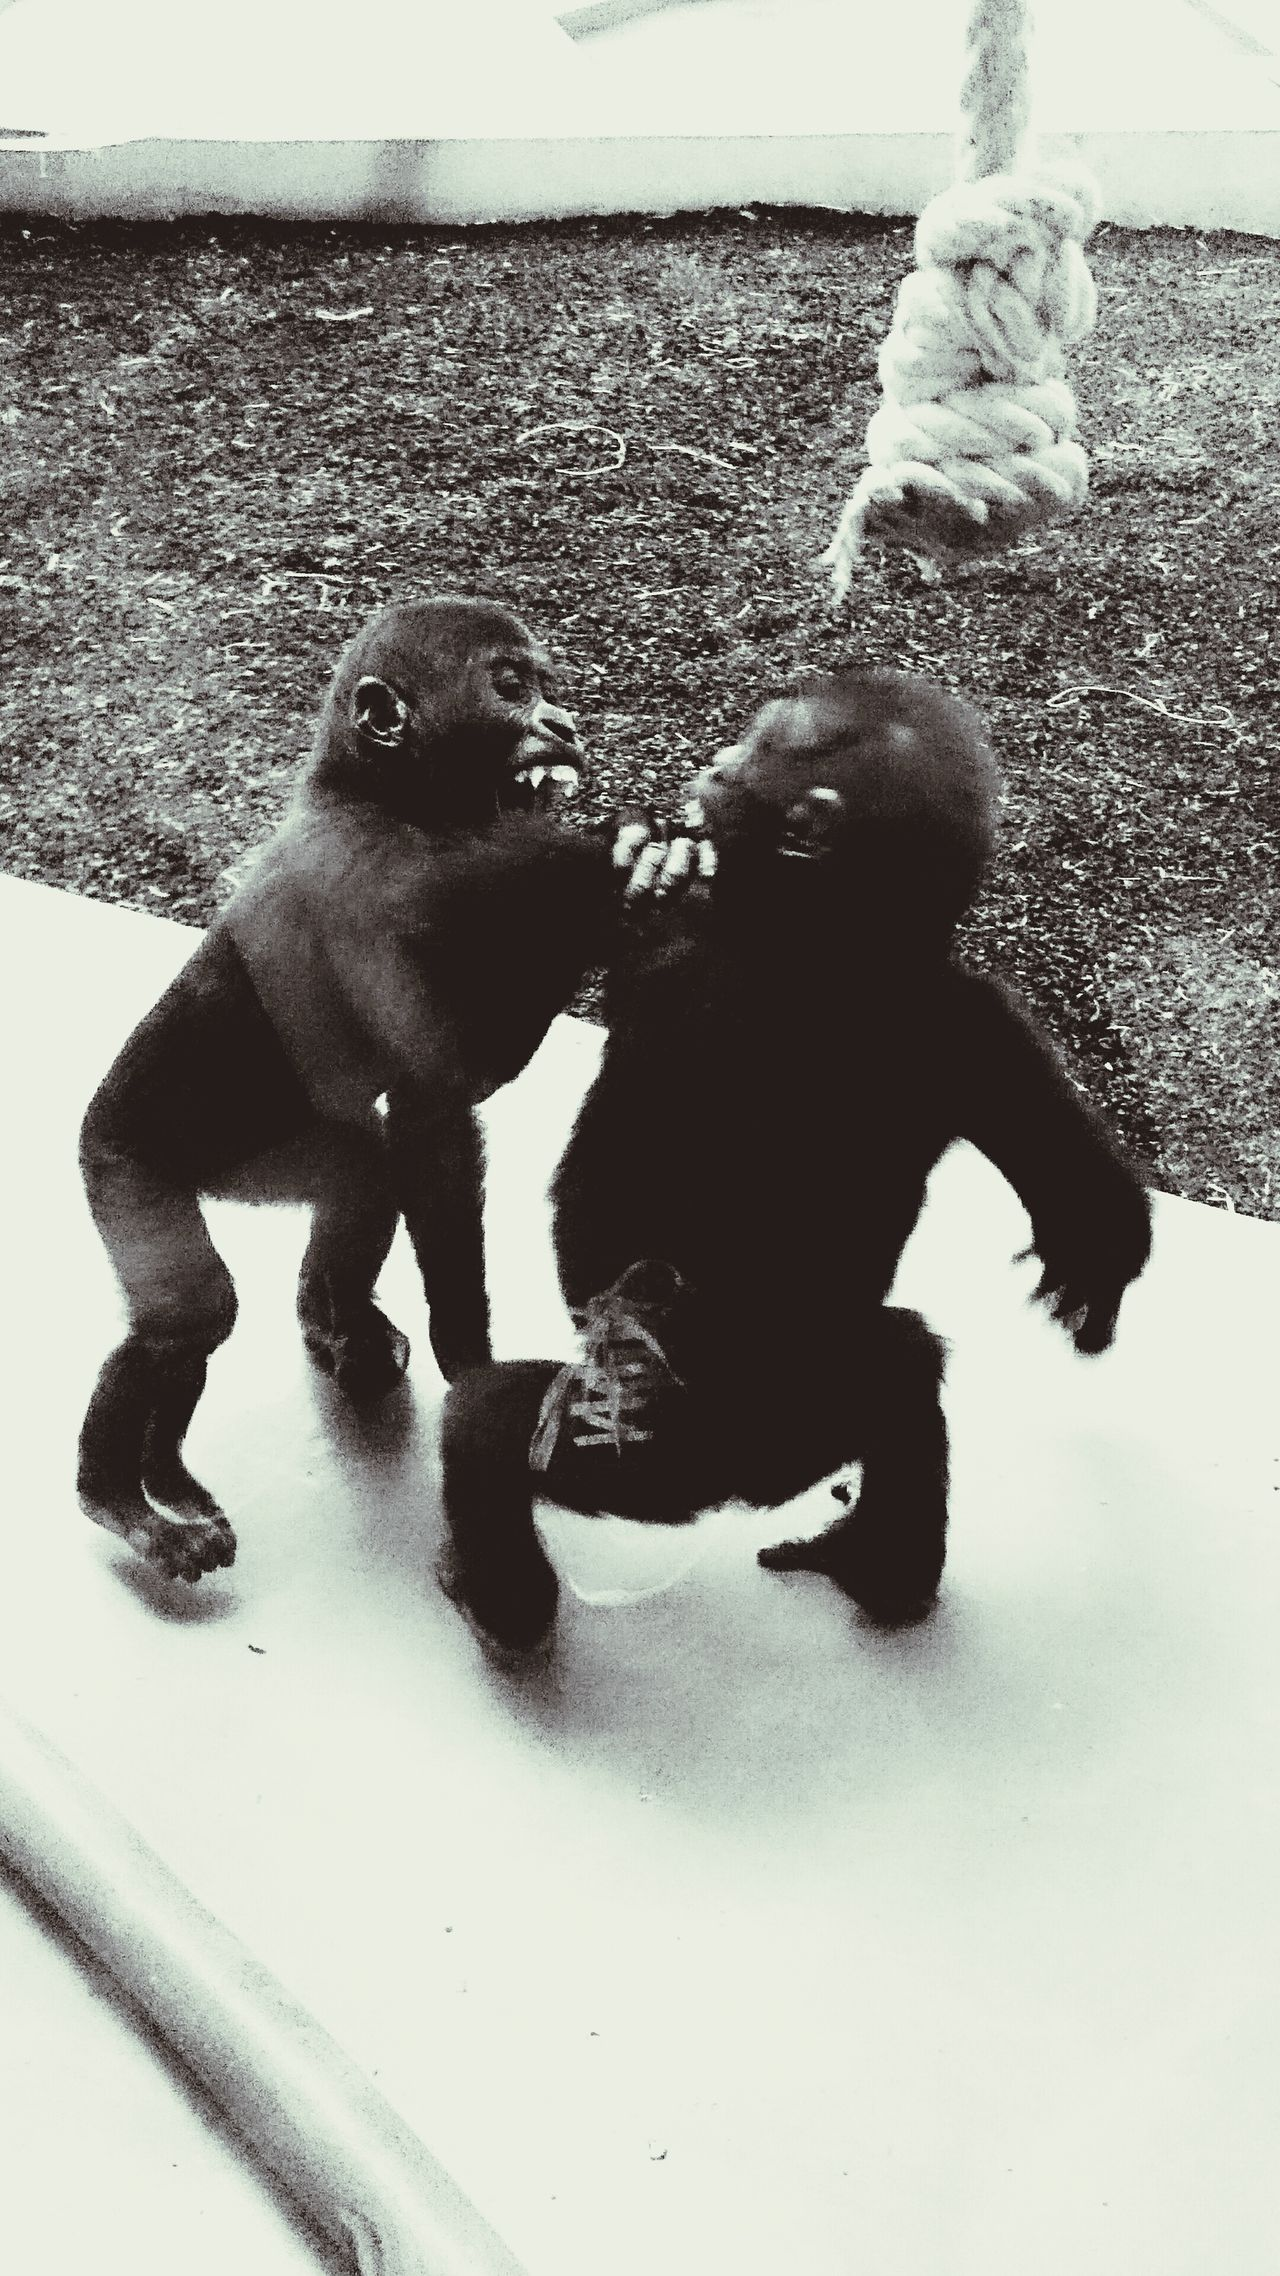 Gorrilaz Playing Loughing Friends animal Family Zoo They Have Fun stuttgart